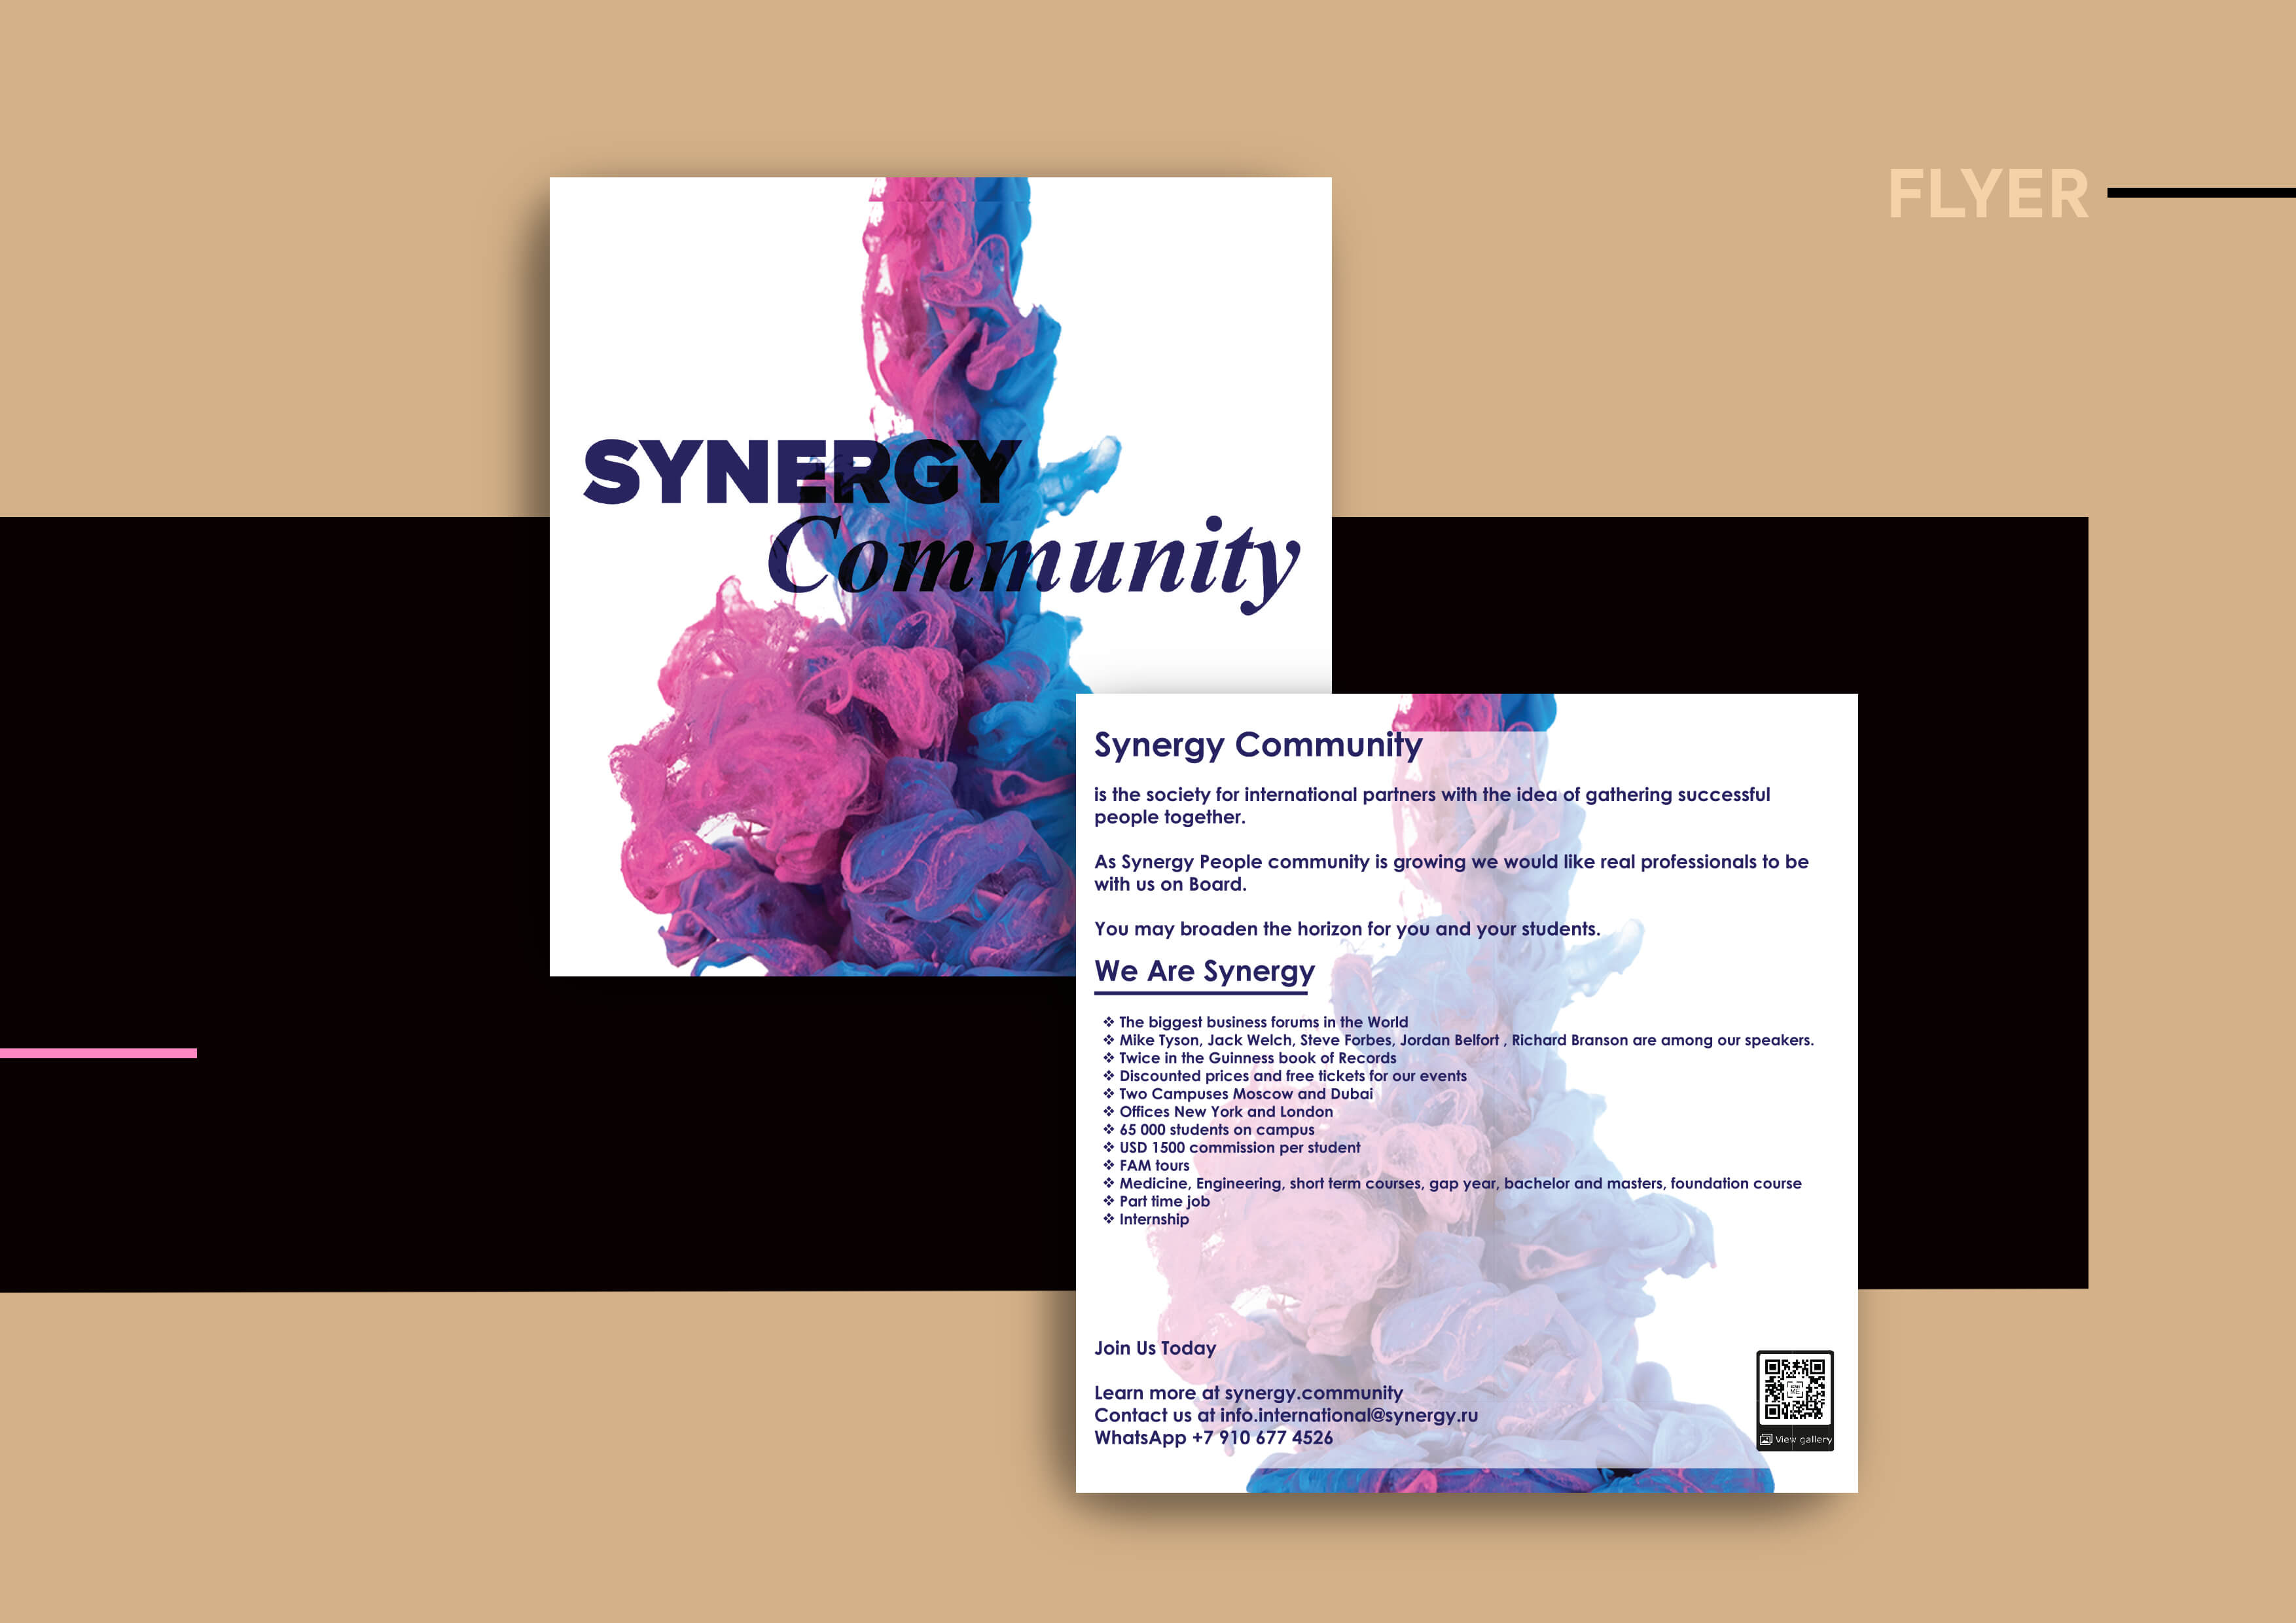 Synergy Community